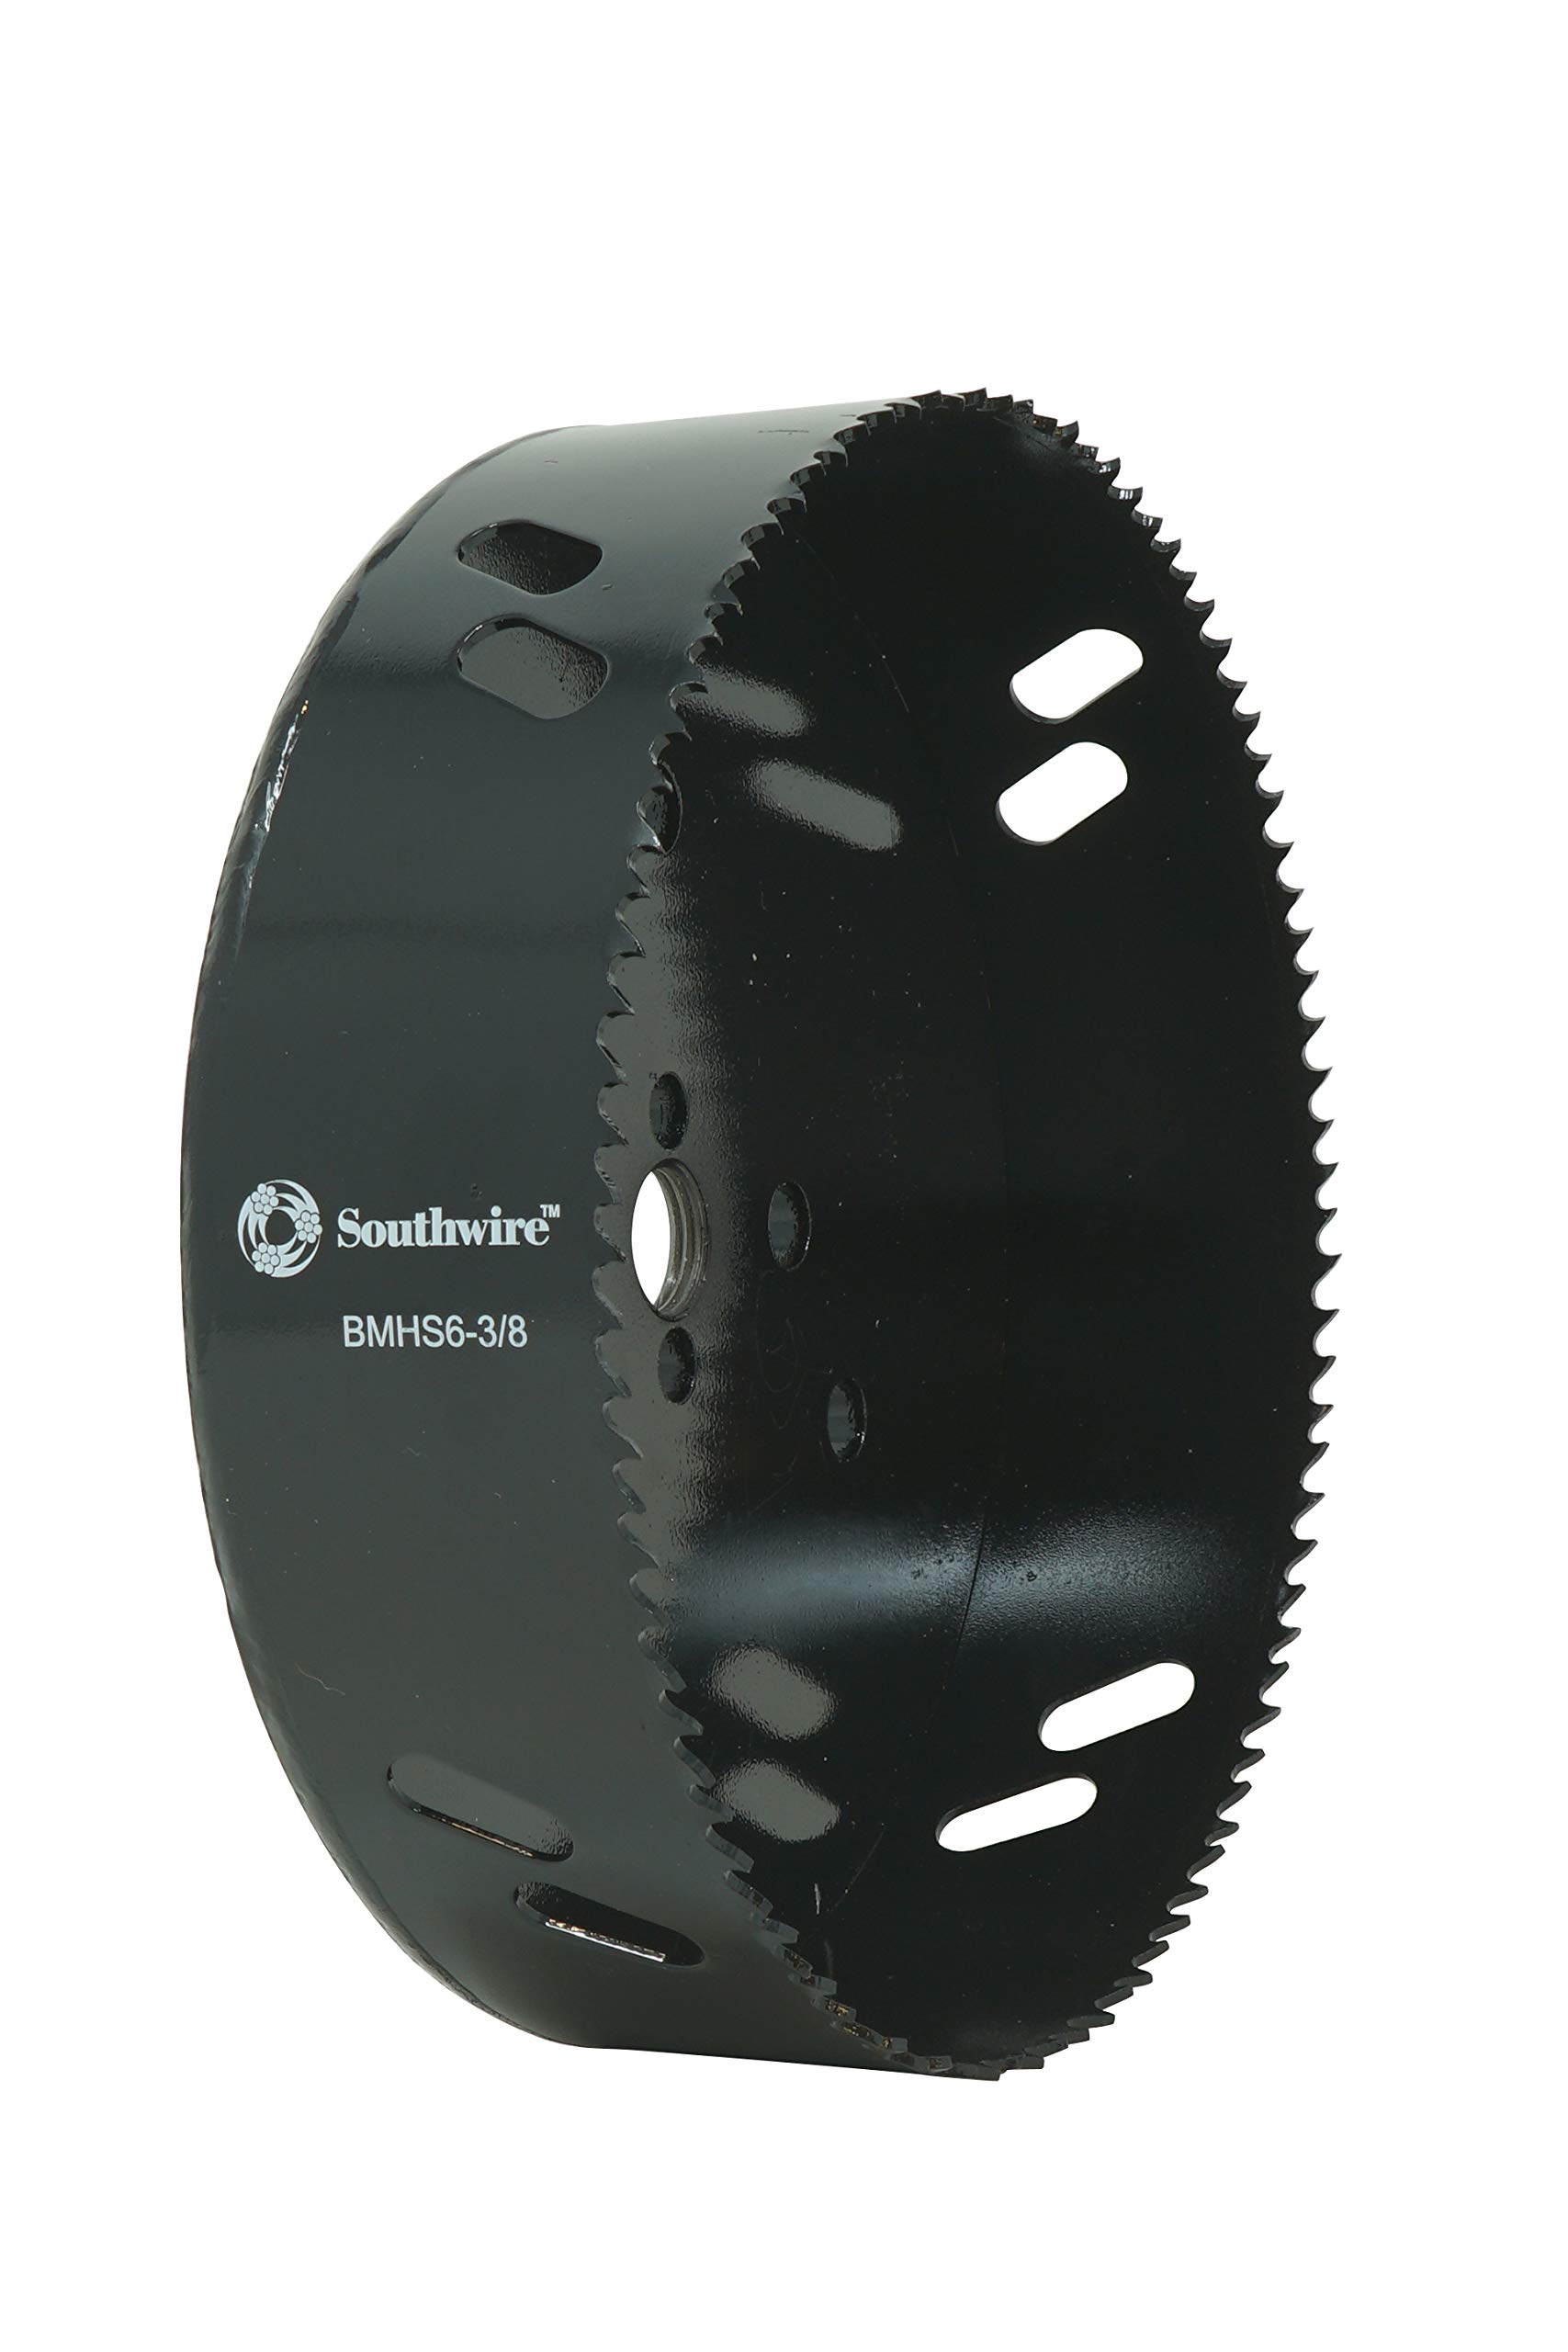 Southwire Tools & Equipment BMHS6-3/8 Bi-Metal Hole Saw, 6-3/8'' Diameter, Perfect For Recessed & Can Lights. Great Metal, Wood, Drywall Saw by Southwire